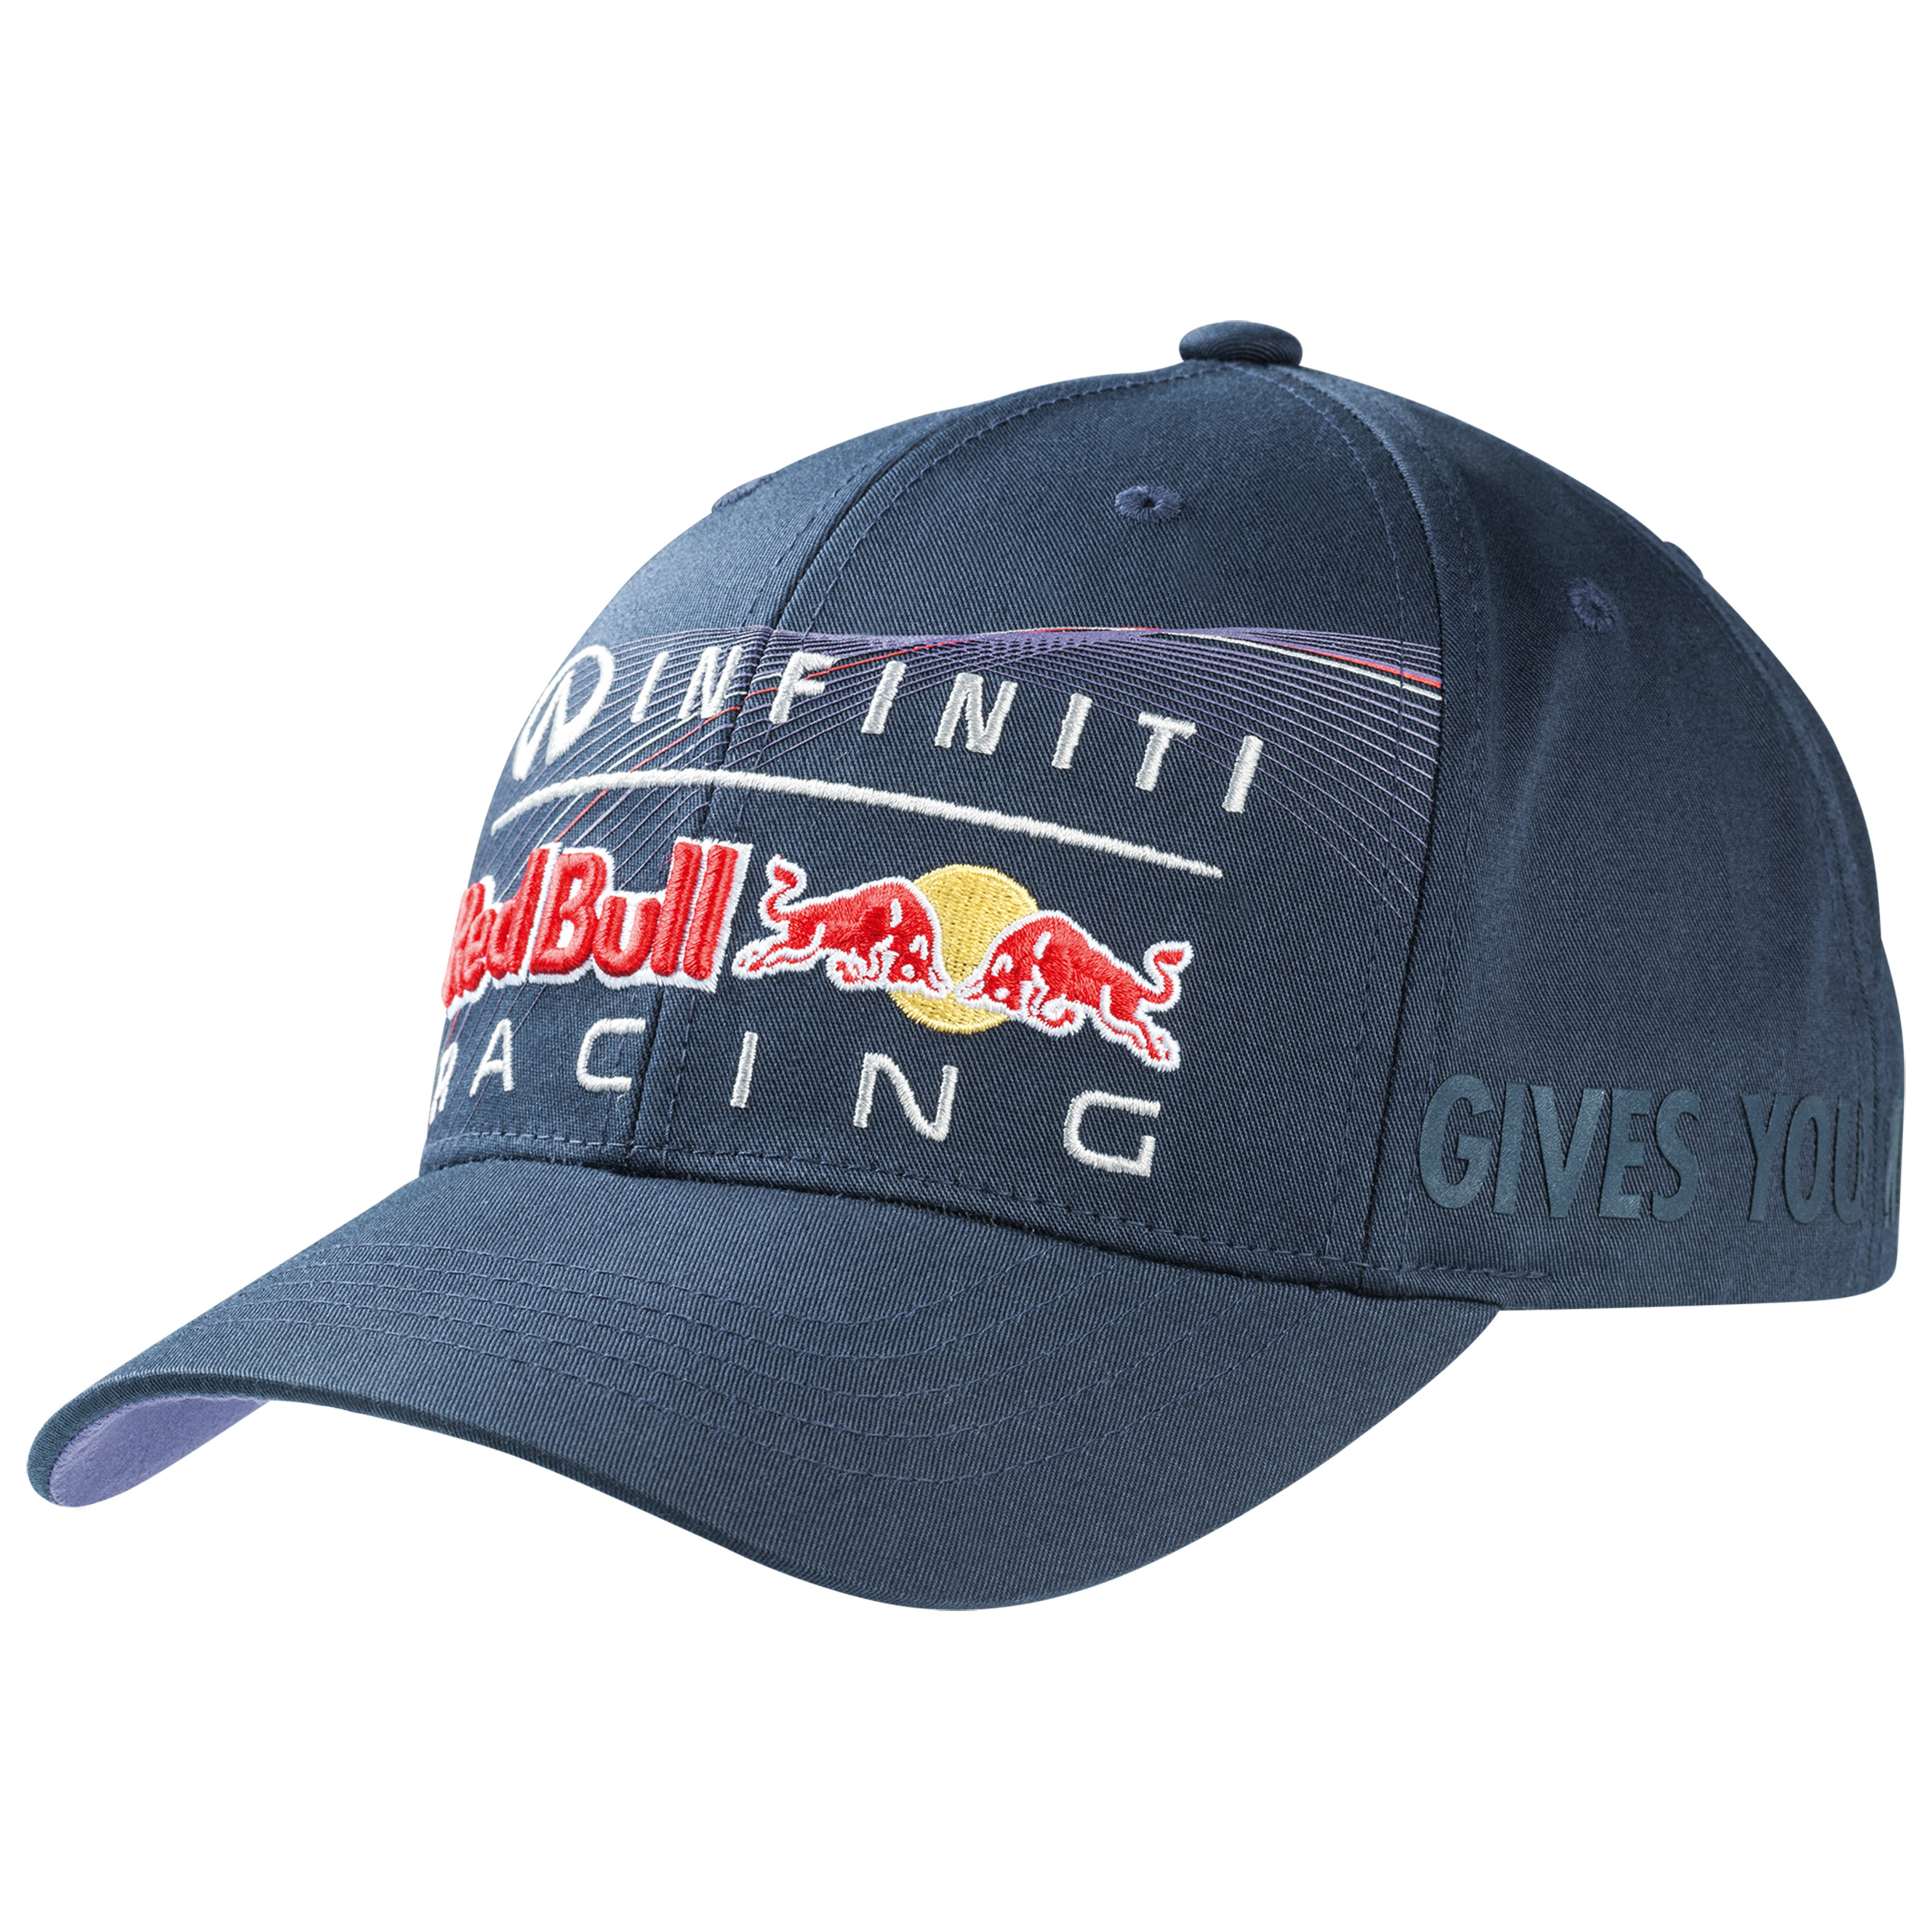 Infiniti Red Bull Racing Race Logo Cap Navy